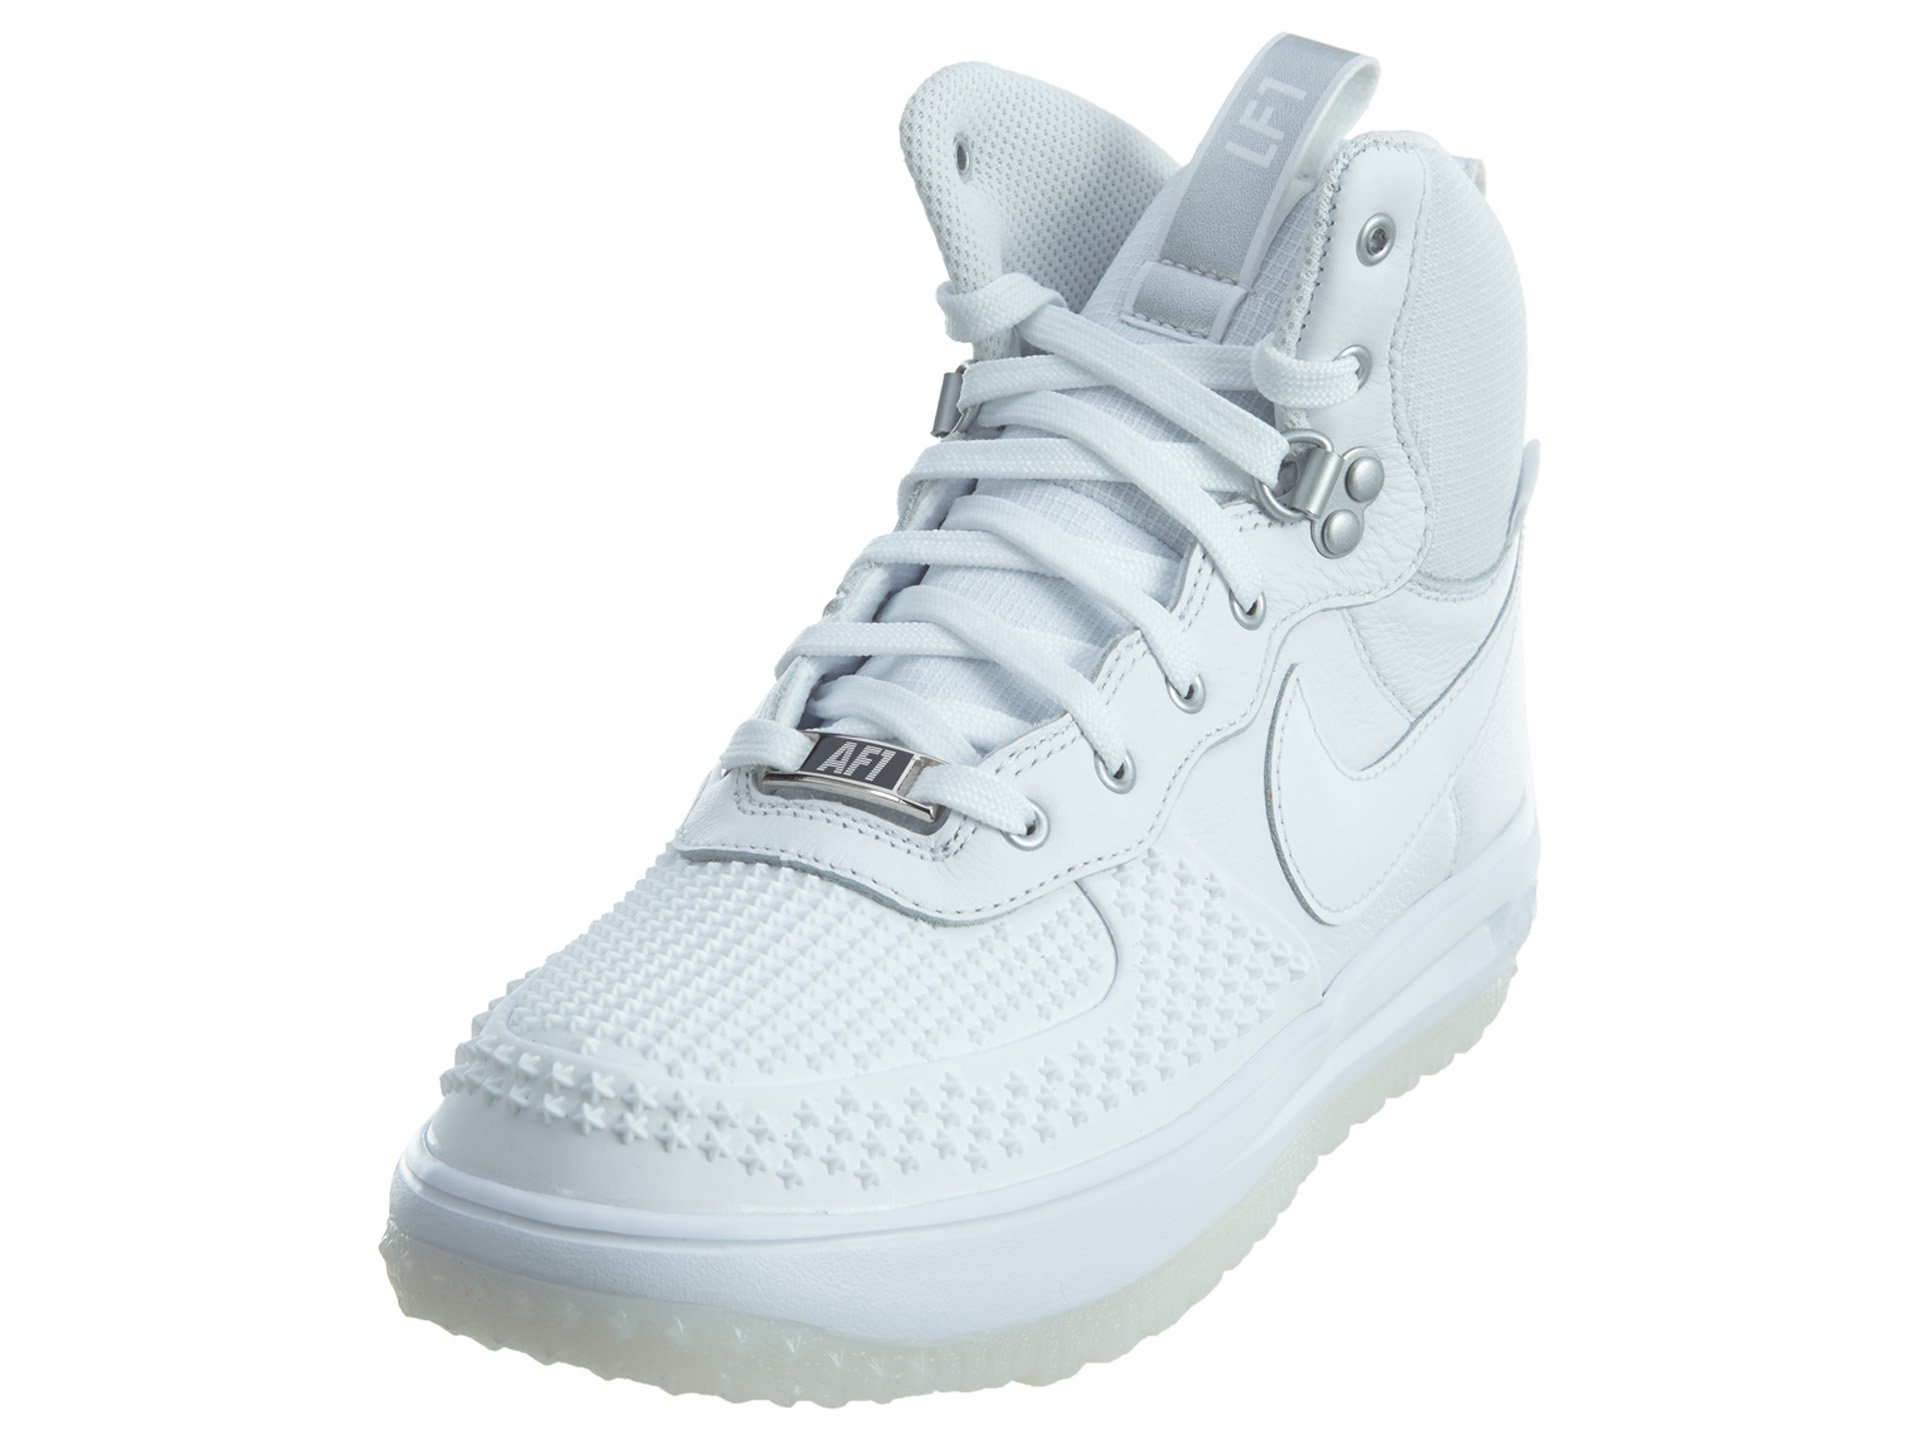 Nike Lunar Force 1 Duckboot (GS) Big Kids Shoes White/White 882842-100 (7 M US)